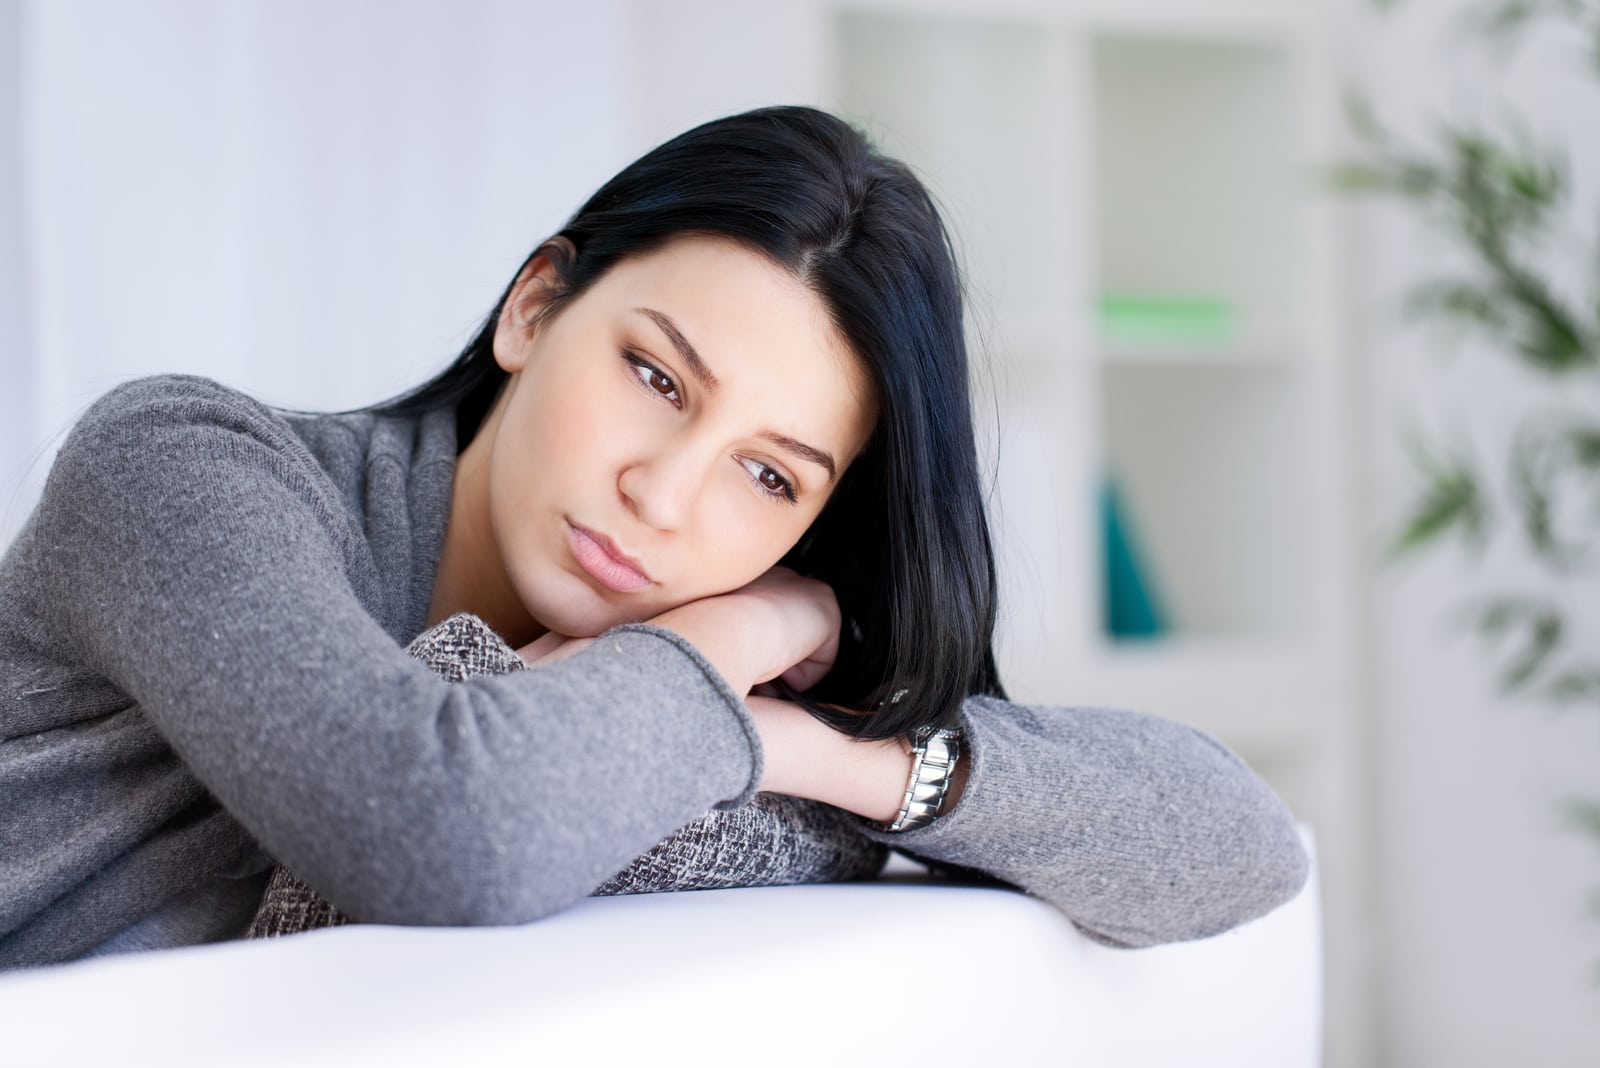 sad woman deep in thoughts